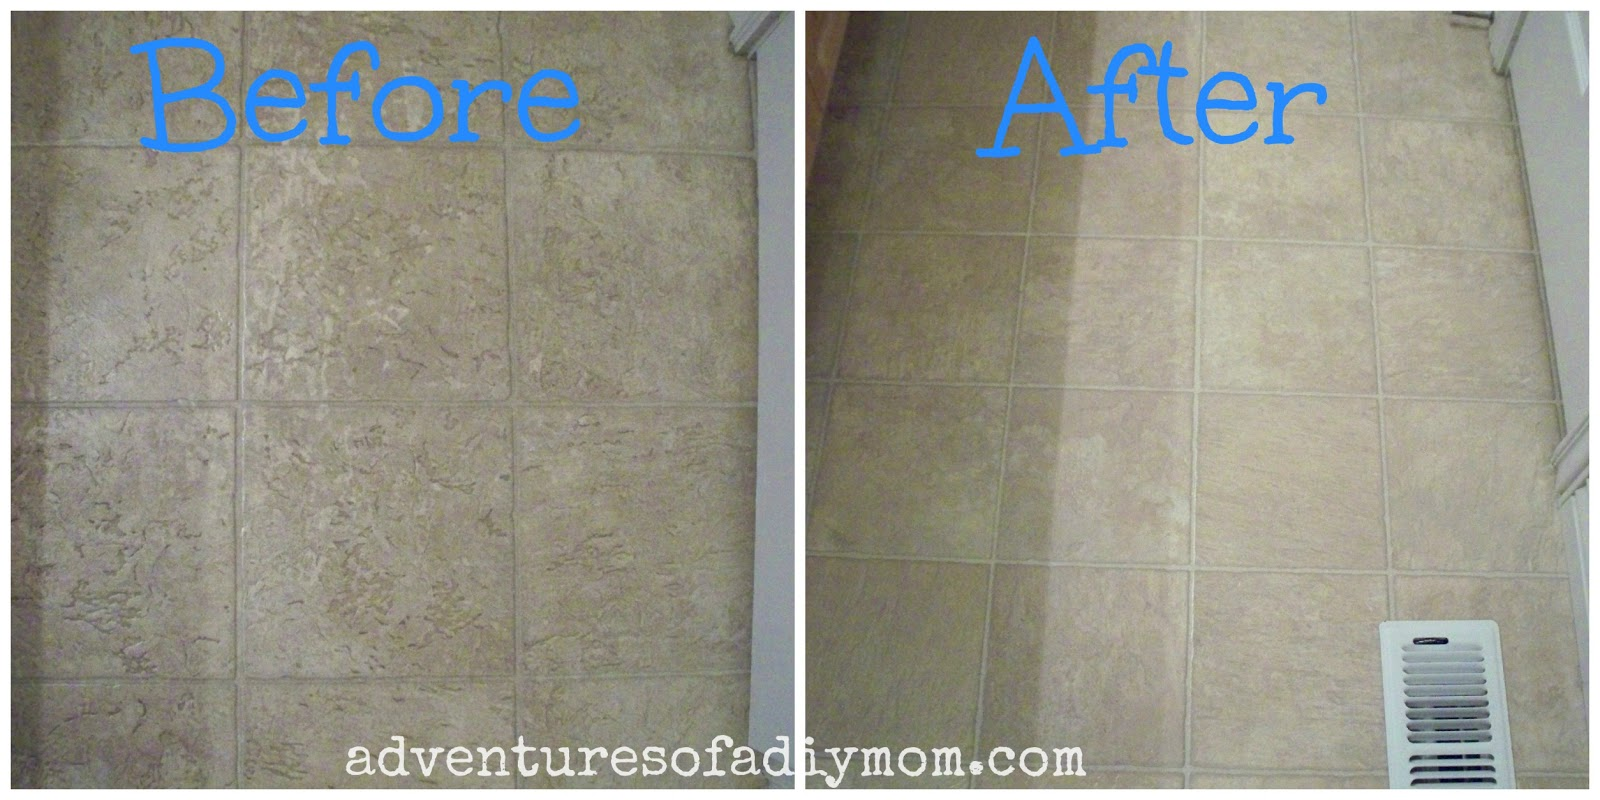 How to Remove Hairspray Residue from Floor - Adventures of a DIY Mom